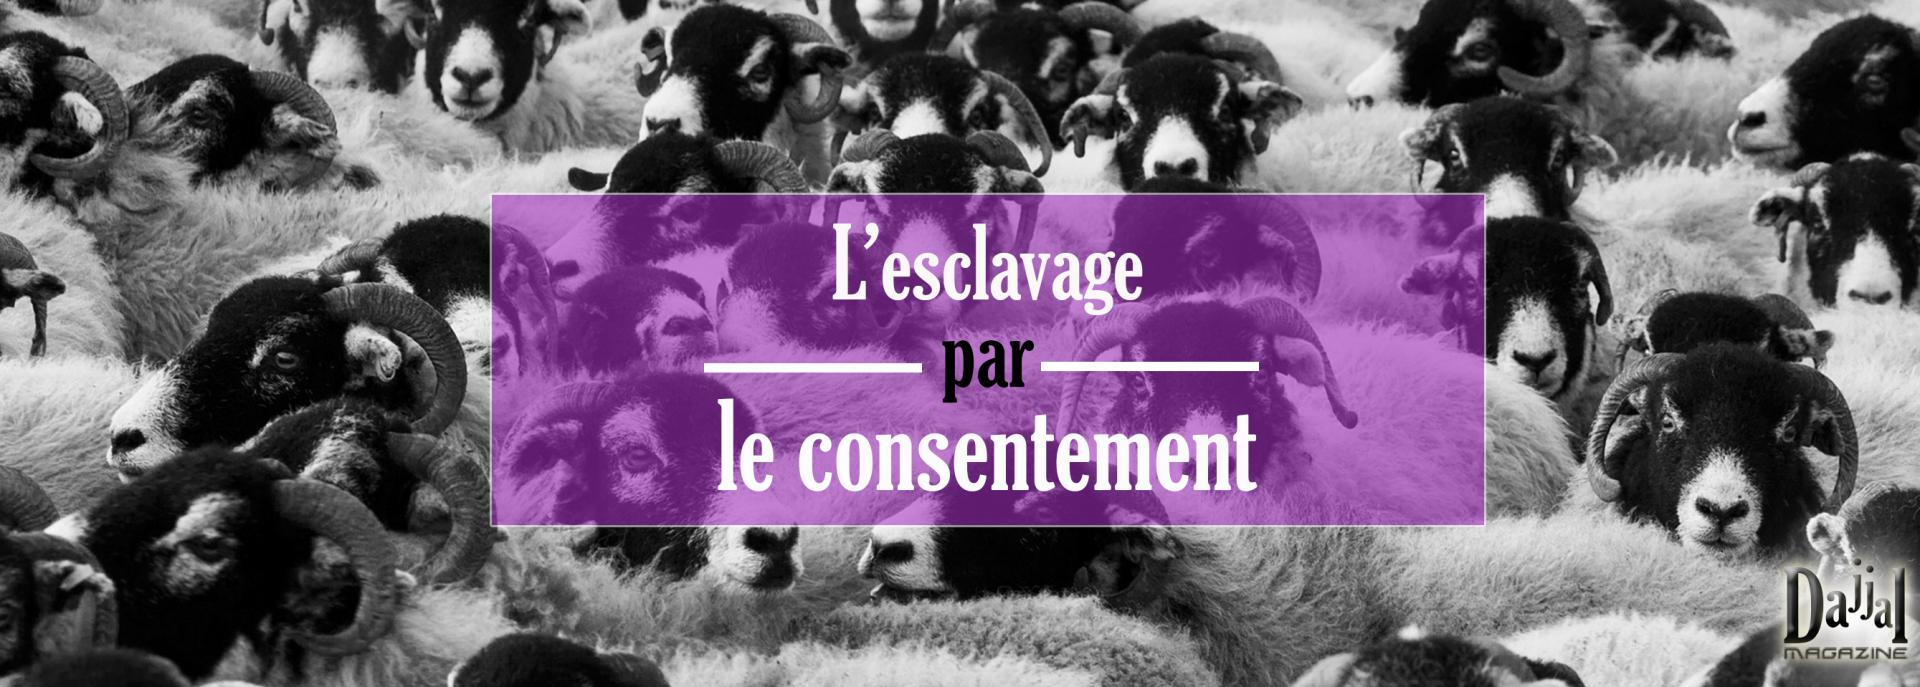 L esclavage par le consentement